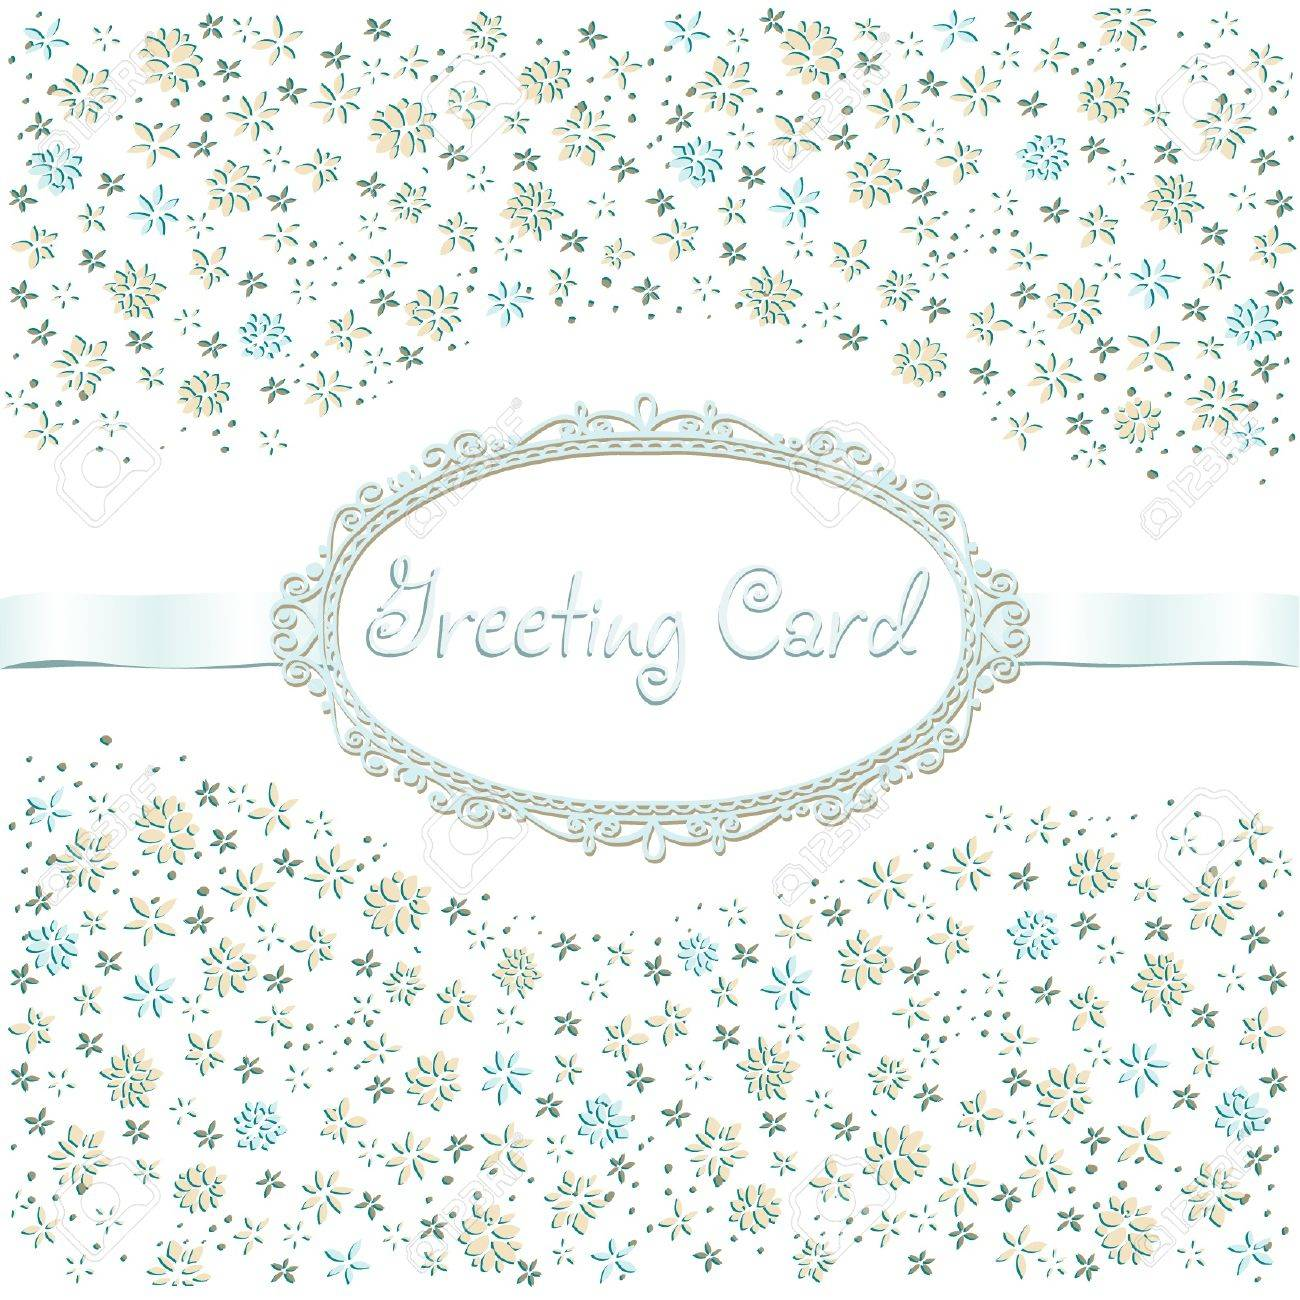 Vintage Romantic Greeting Card With Flowers, Ribbon And Text ...